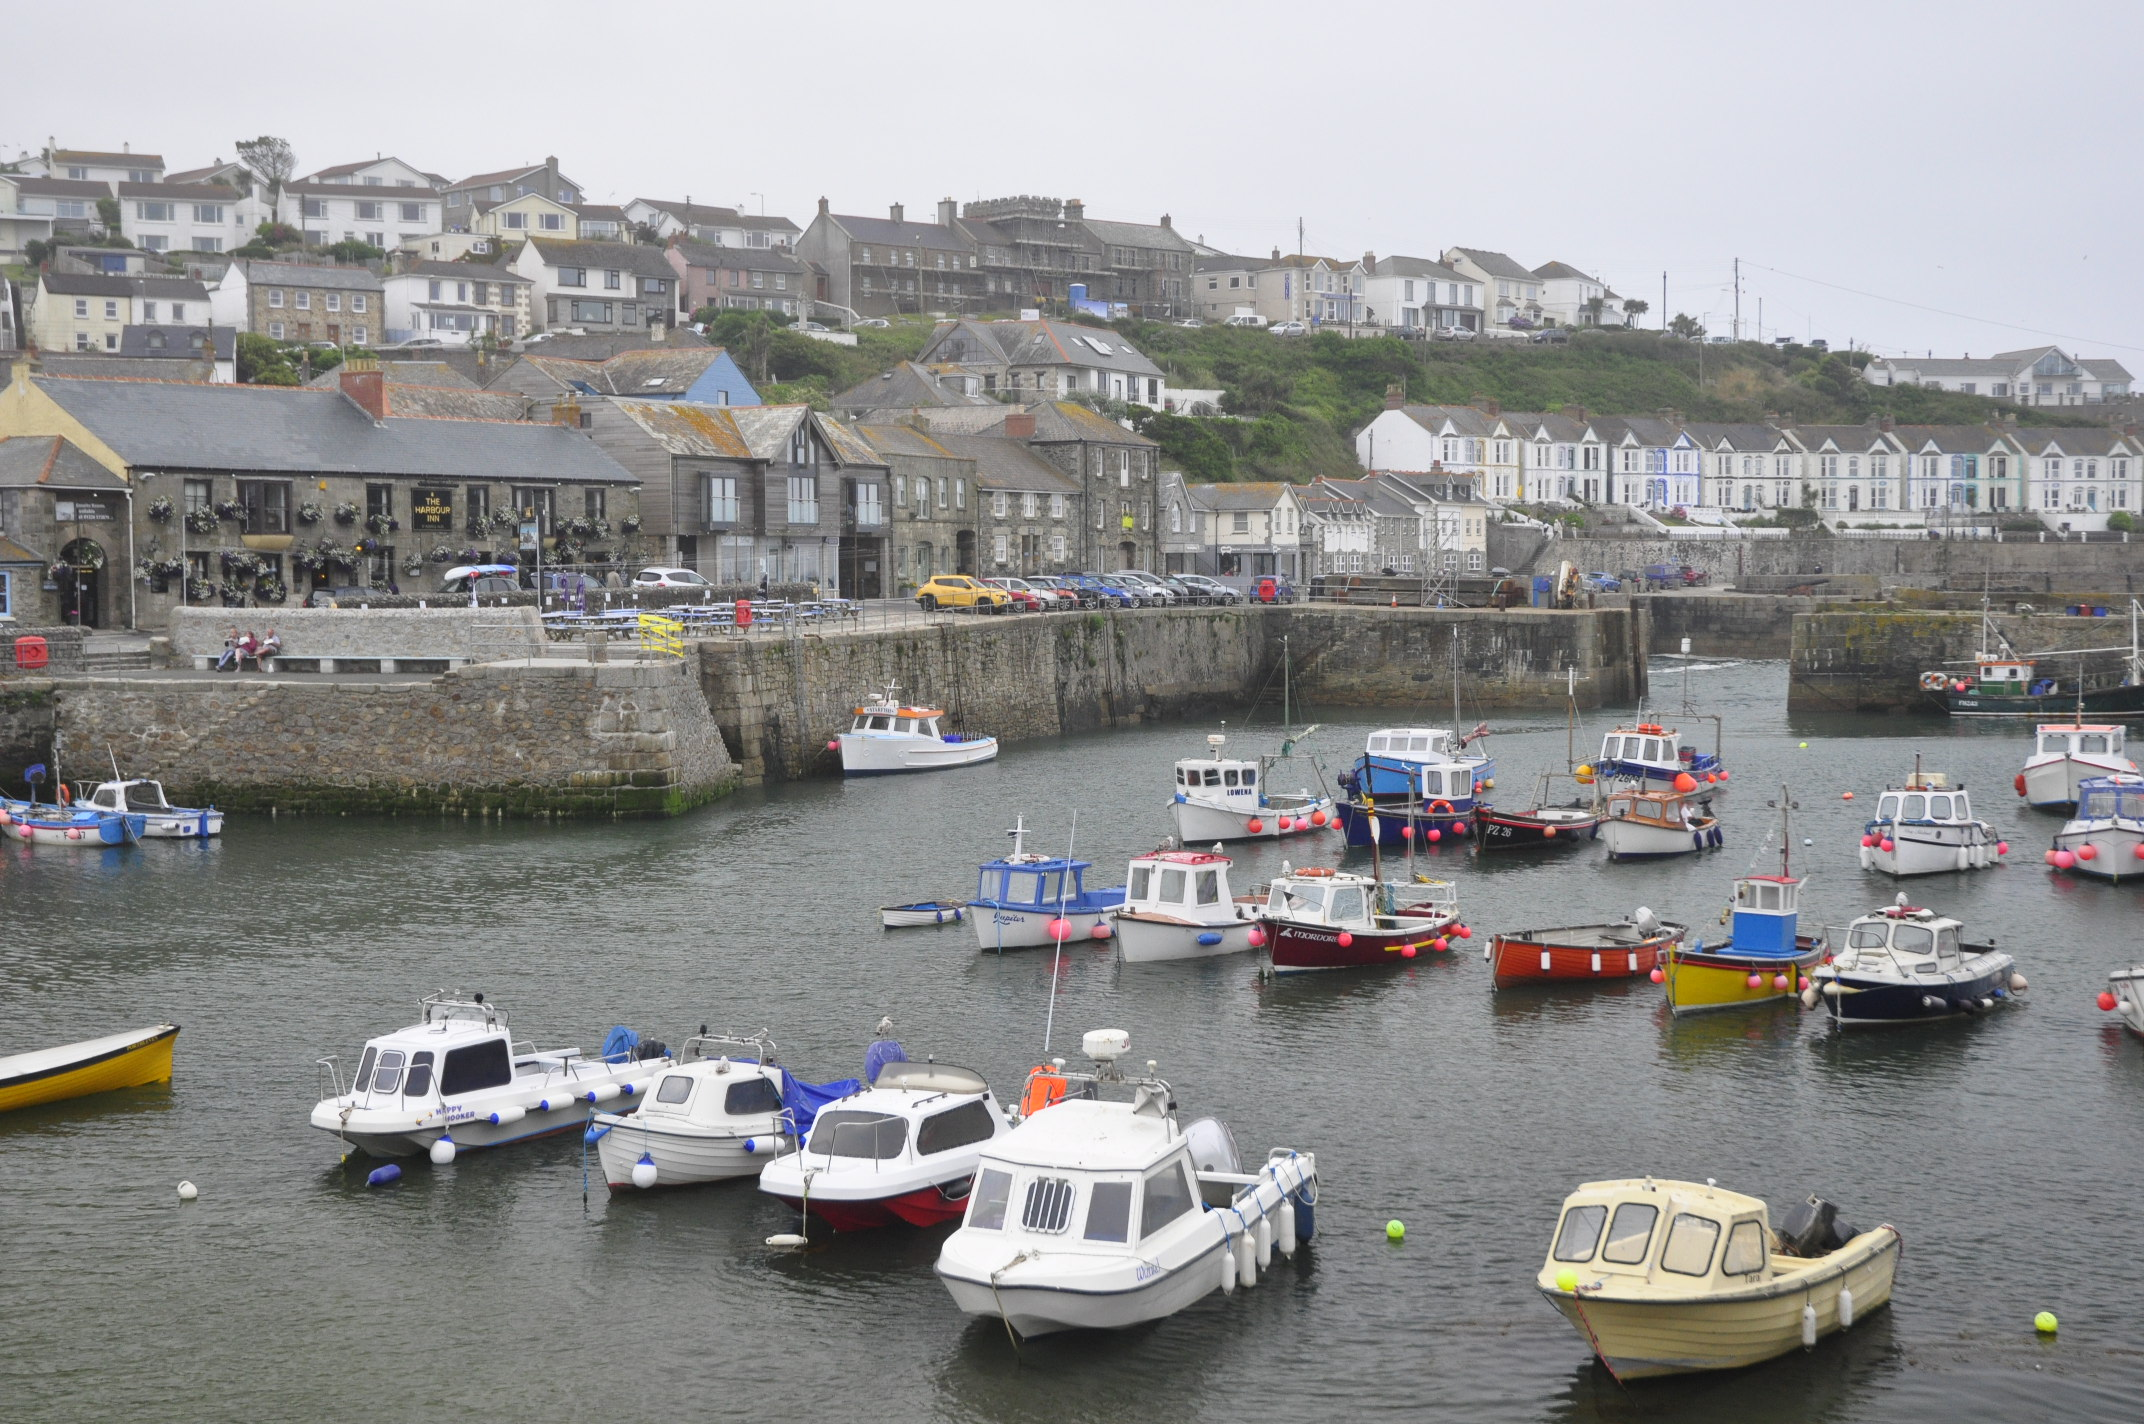 Porthleven harbour, well protected from the wild sea. The Harbour Inn to the left.